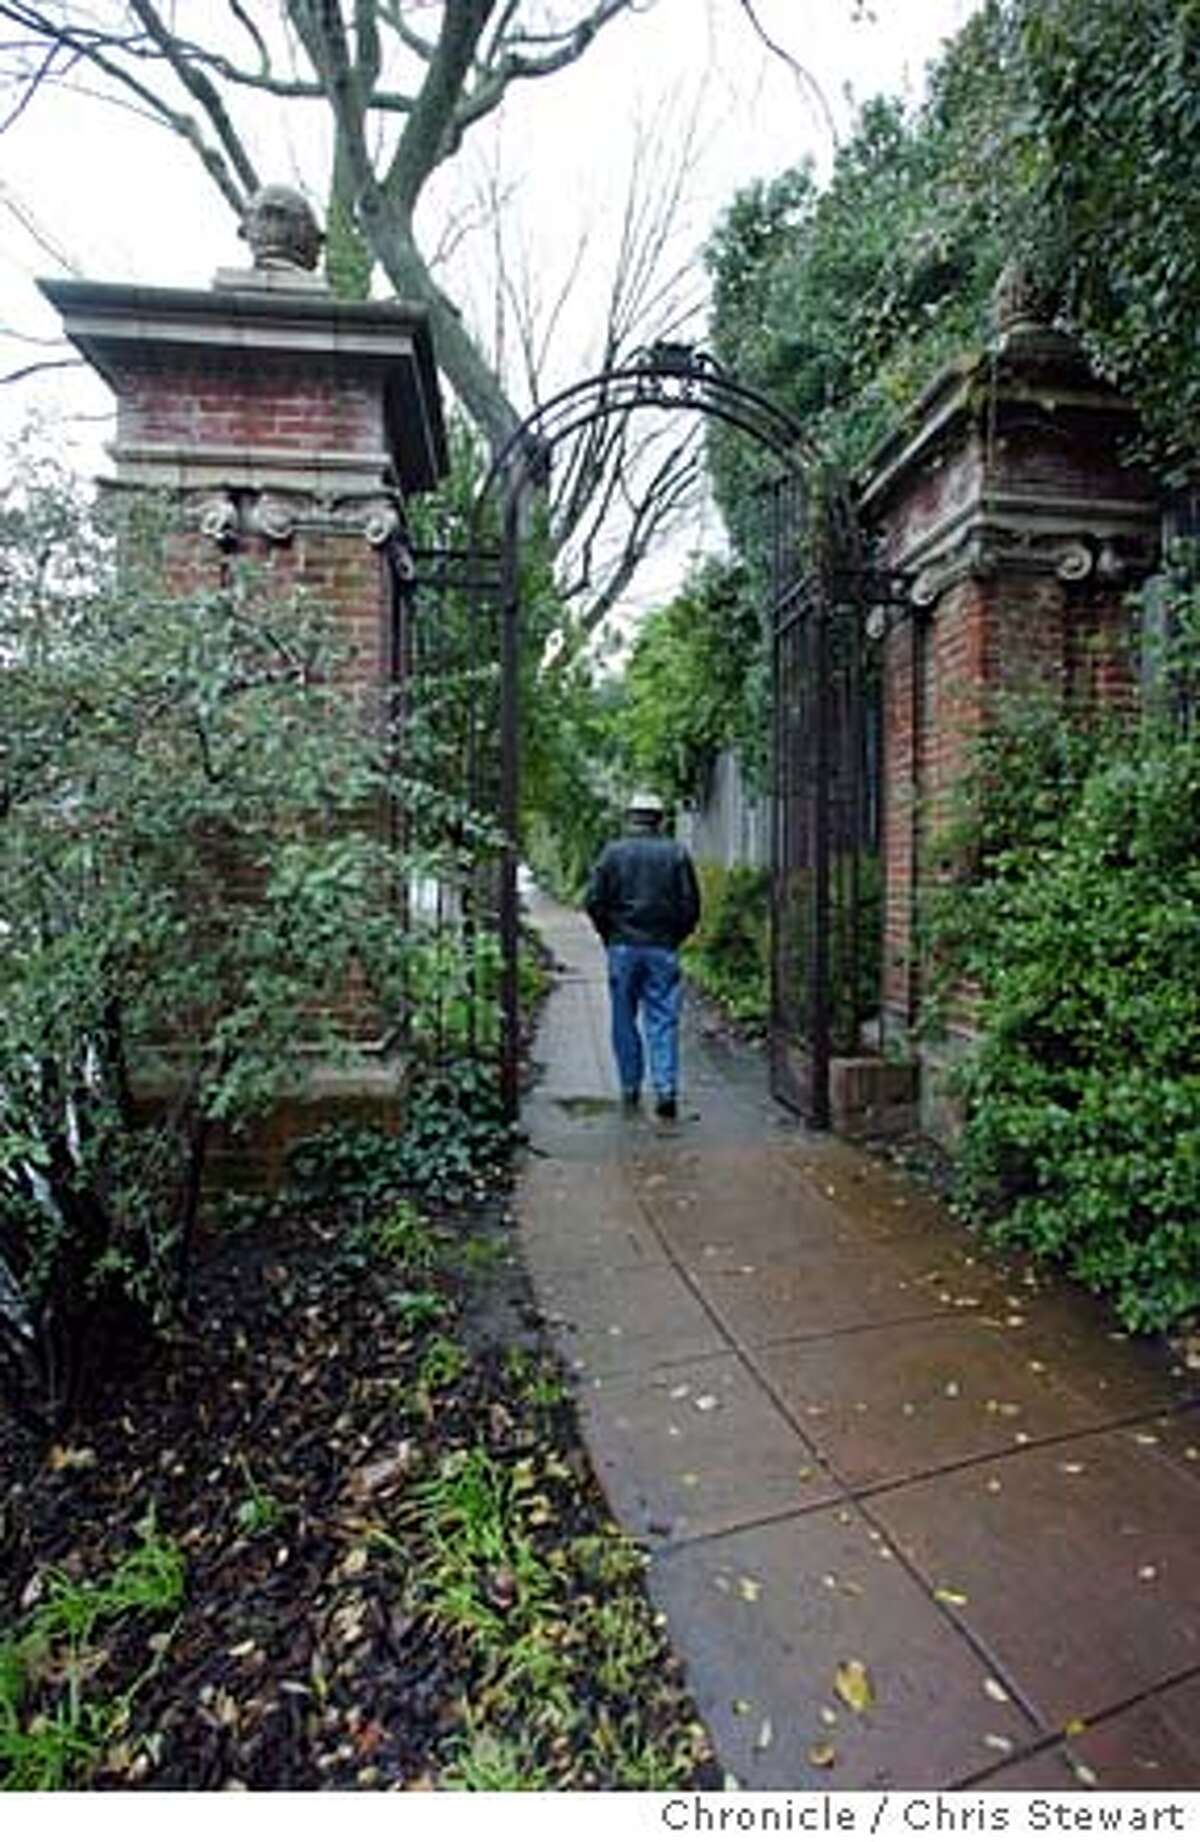 Event on 1/27/04 in Berkeley. Duncan McDuffie, the developer, and the neighborhoods he developed, including this neighborhood with a gate at Claremont Boulevard and Avalon Street in Berkeley. Chris Stewart / The Chronicle